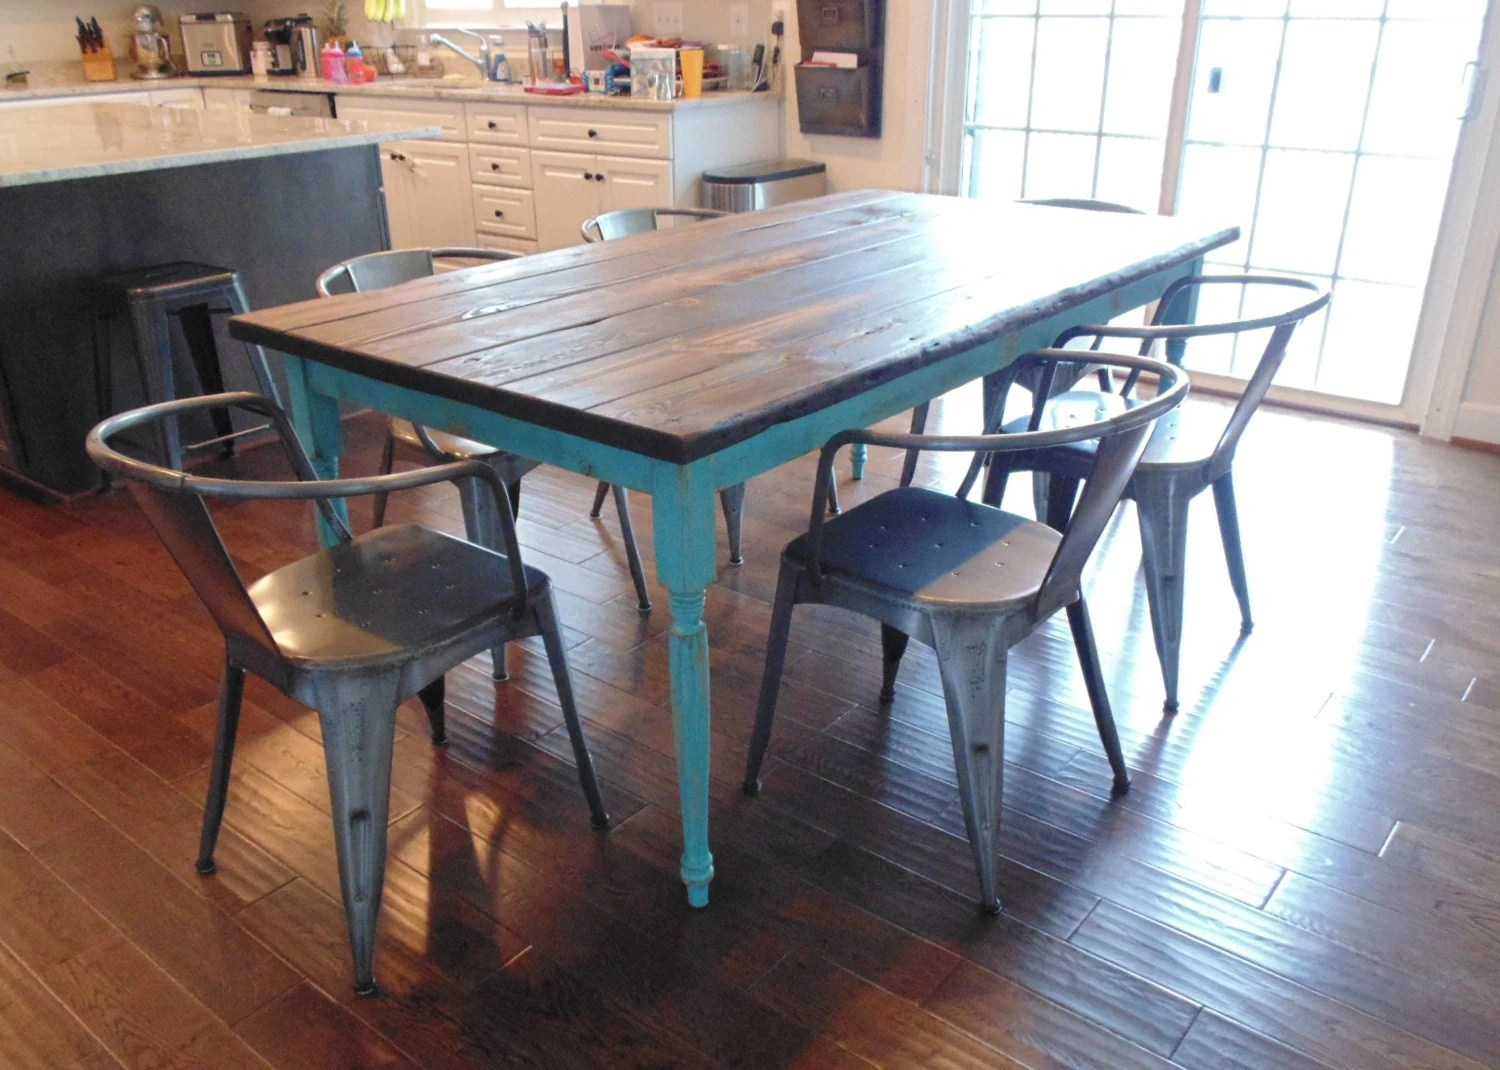 french dining table french country kitchen table Dining Table Ready in 2 Weeks Farmhouse Table French Country Table Reclaimed Wood Table Custom Paint Kitchen Table Distressed Paint